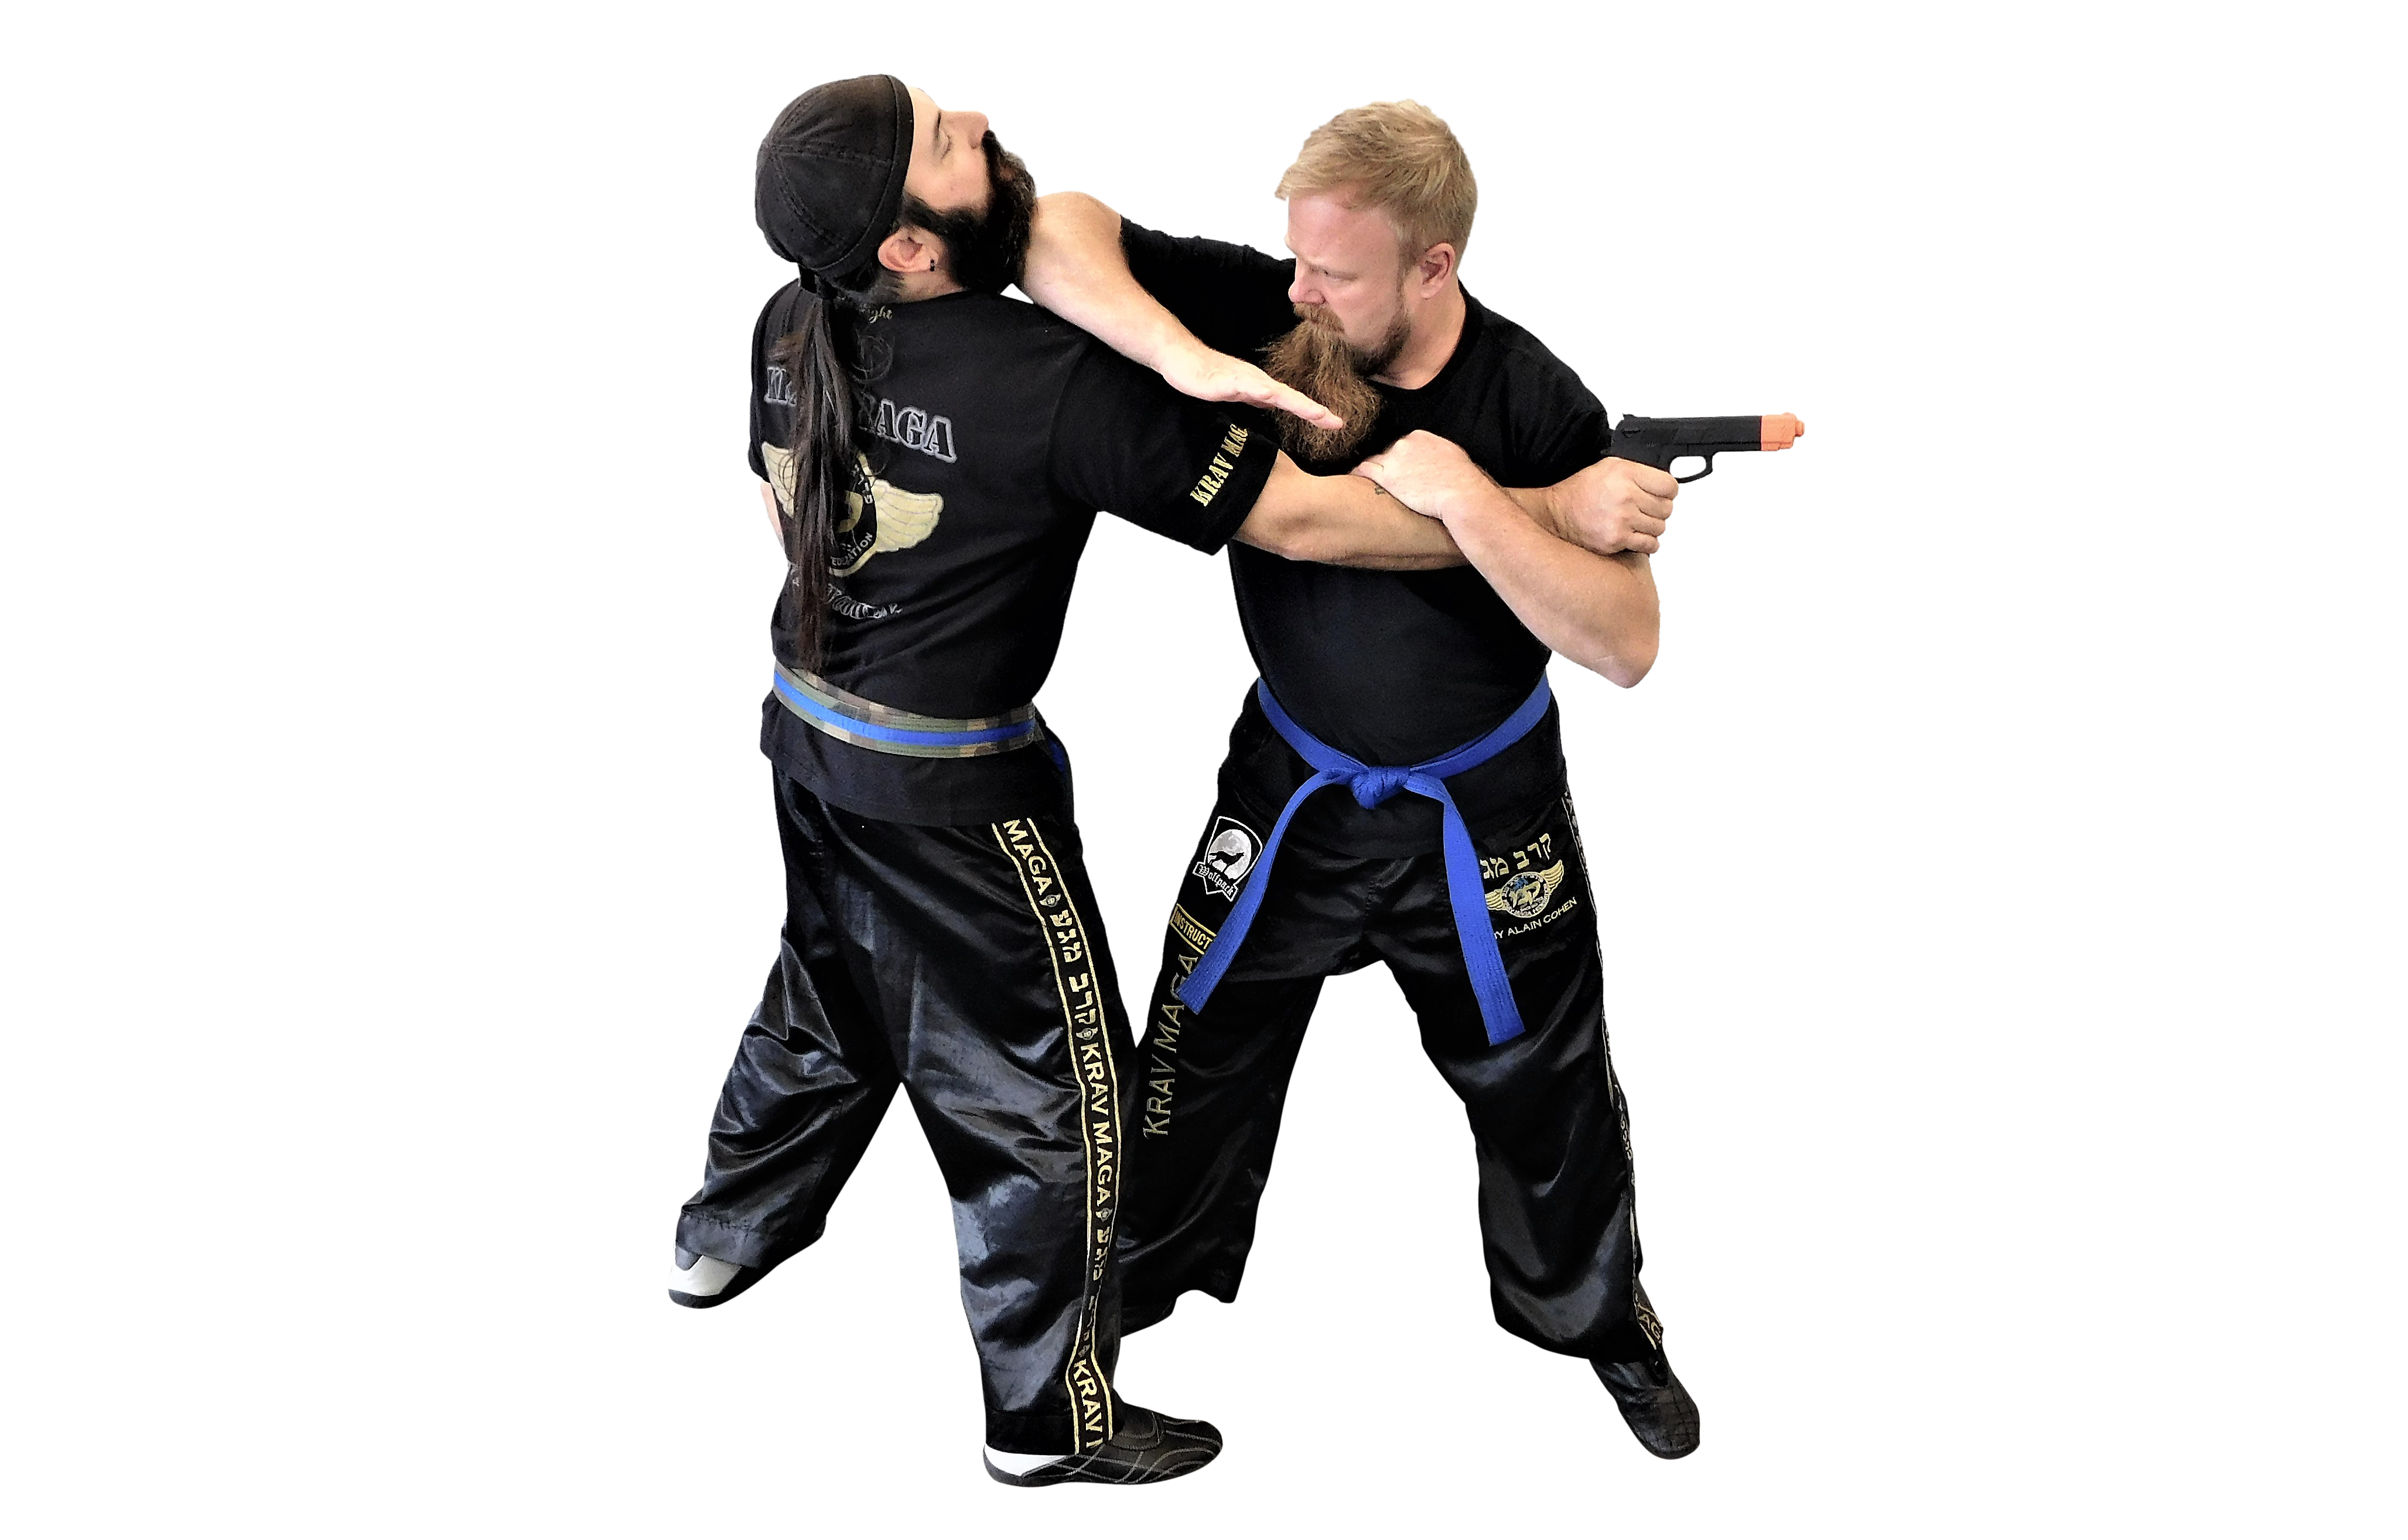 3 Ways to Supplement Your Krav Maga Training